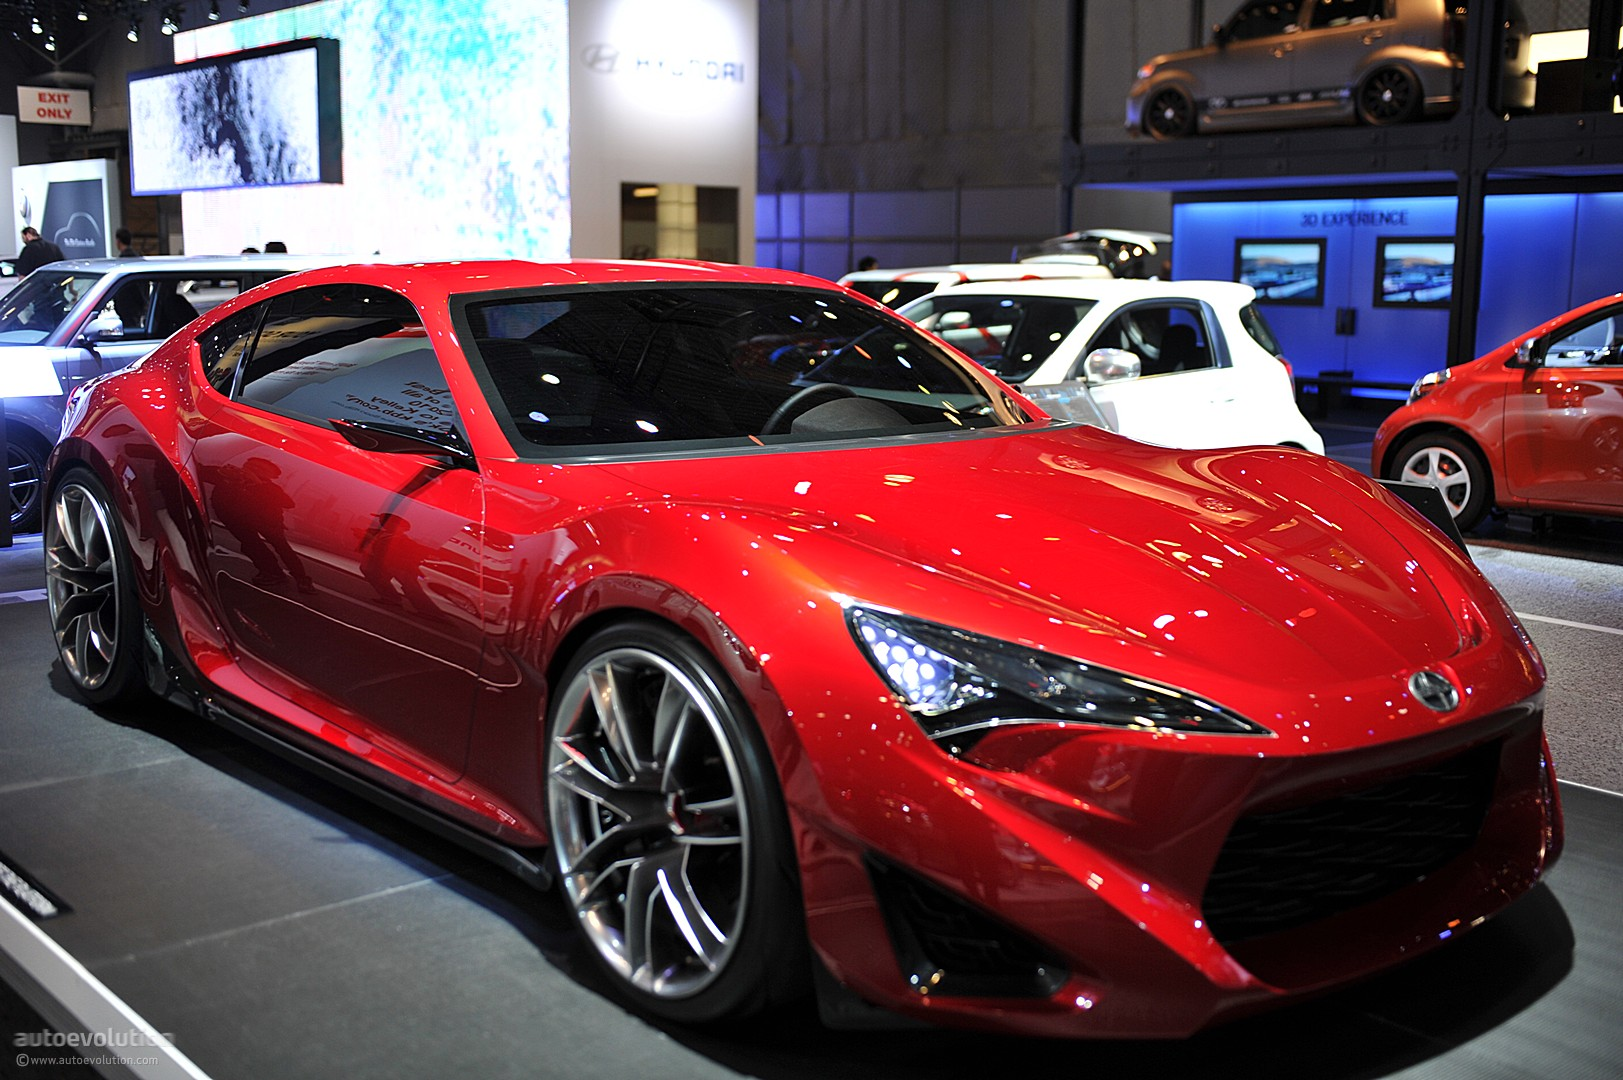 NYIAS 2011: Scion FR-S Concept [Live Photos] - autoevolution